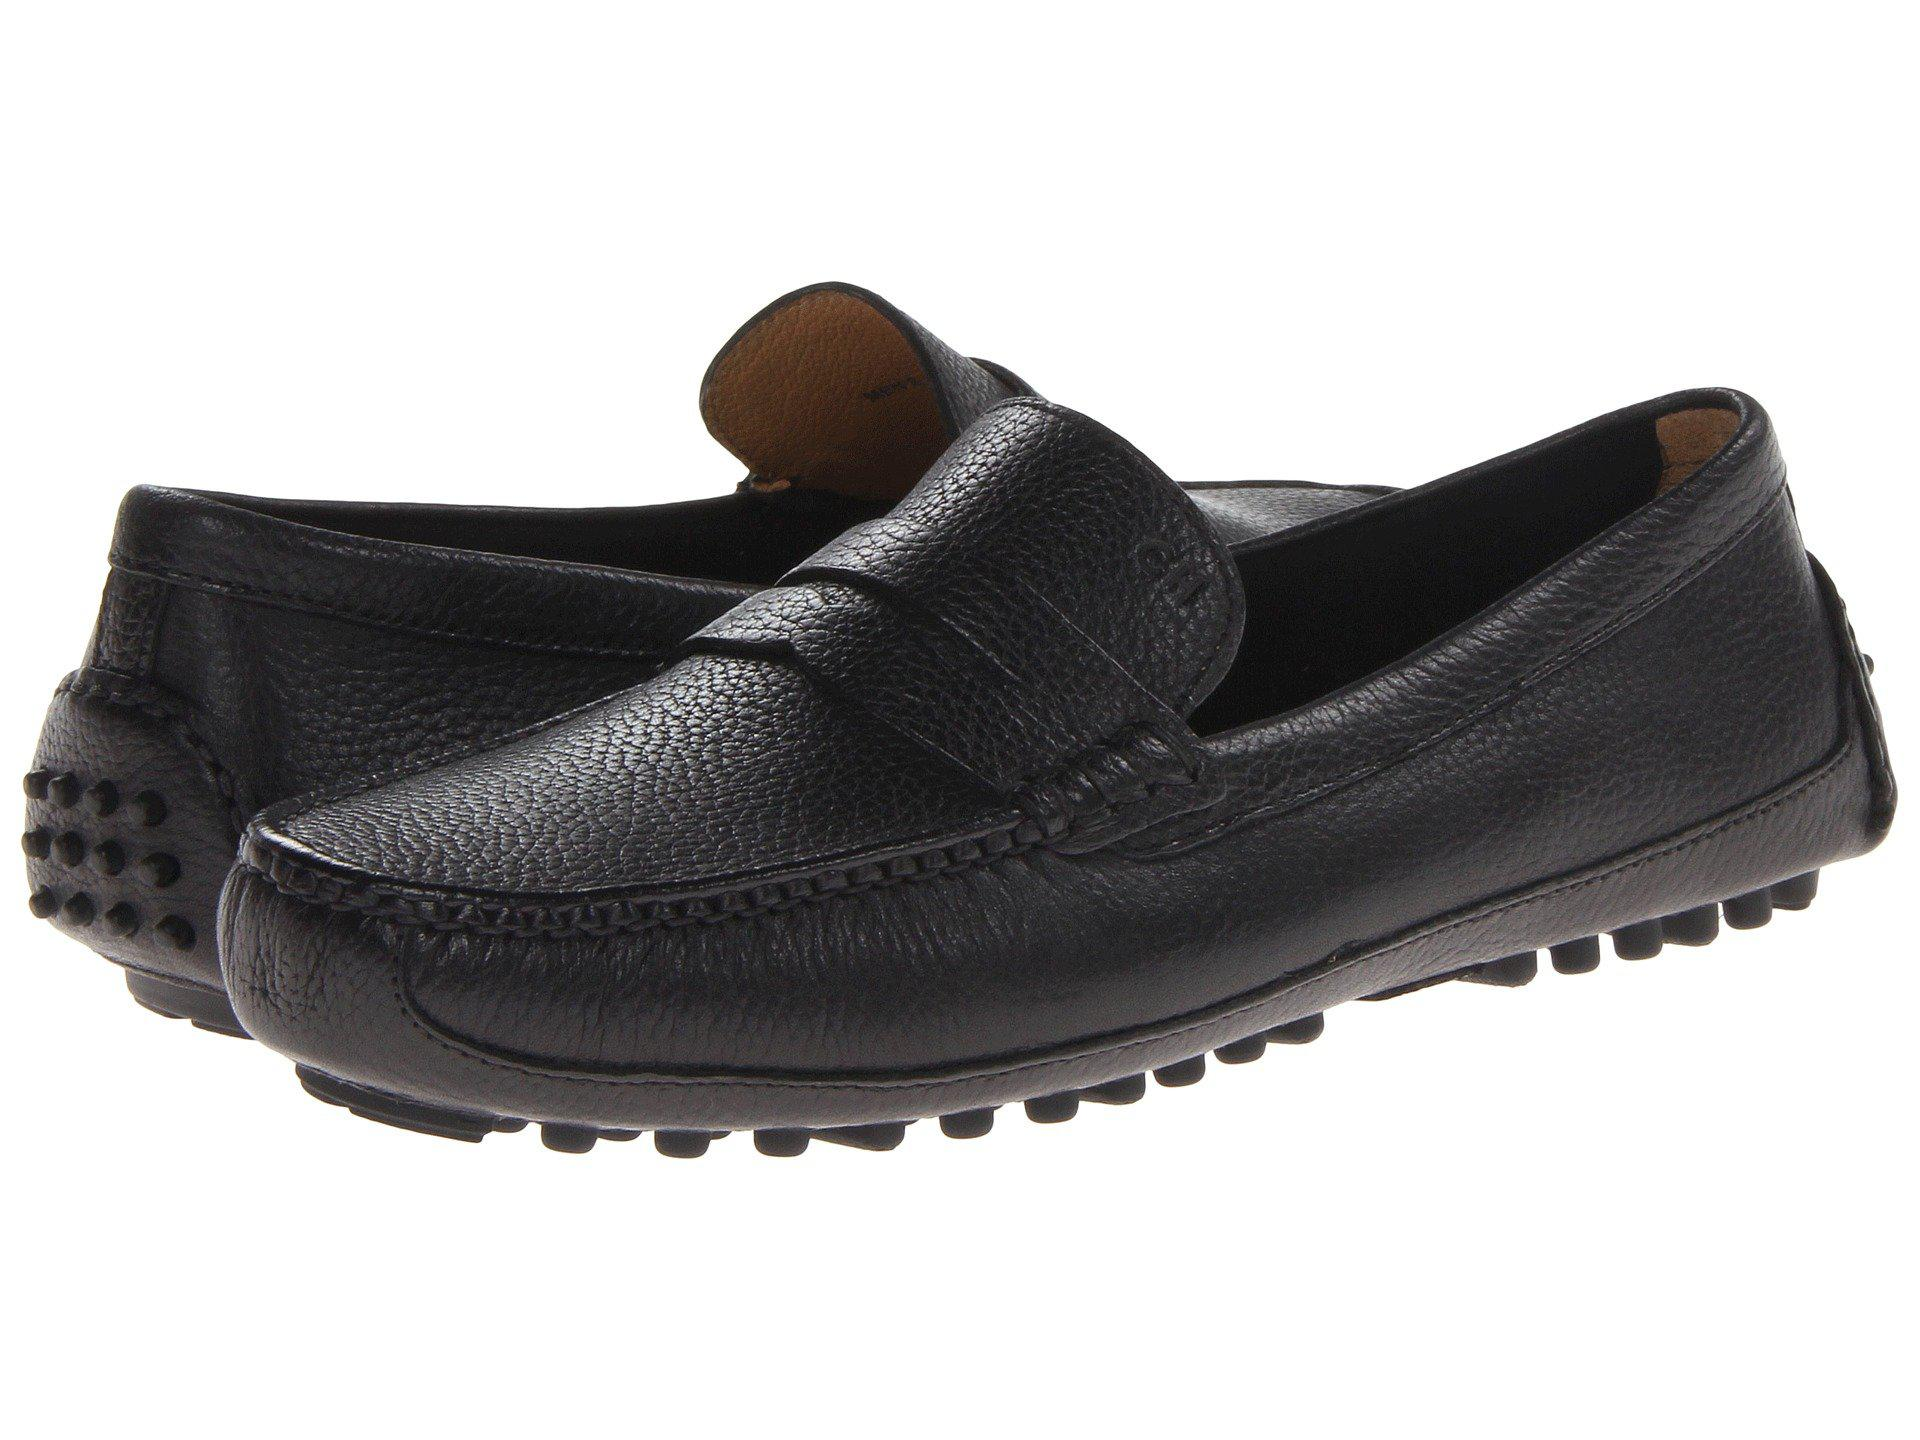 dcc111772b5 Lyst - Cole Haan Grant Canoe Penny in Black for Men - Save 38%